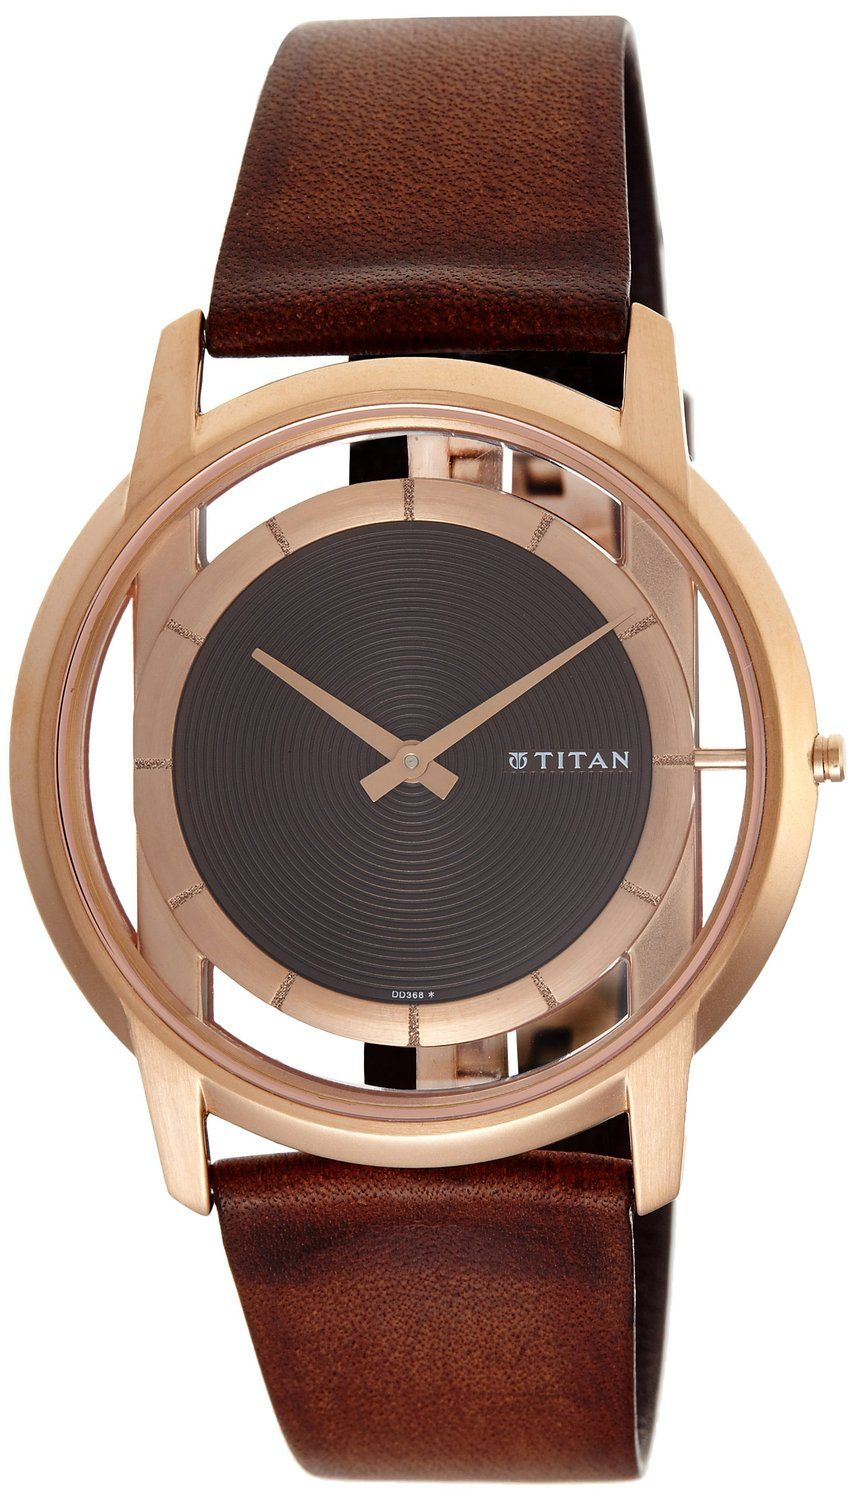 titan edge analog brown dial menu0027s watch 1577wl01 titan is the worldu0027s fifth largest wrist watch and exports watches to nearly 32 countries